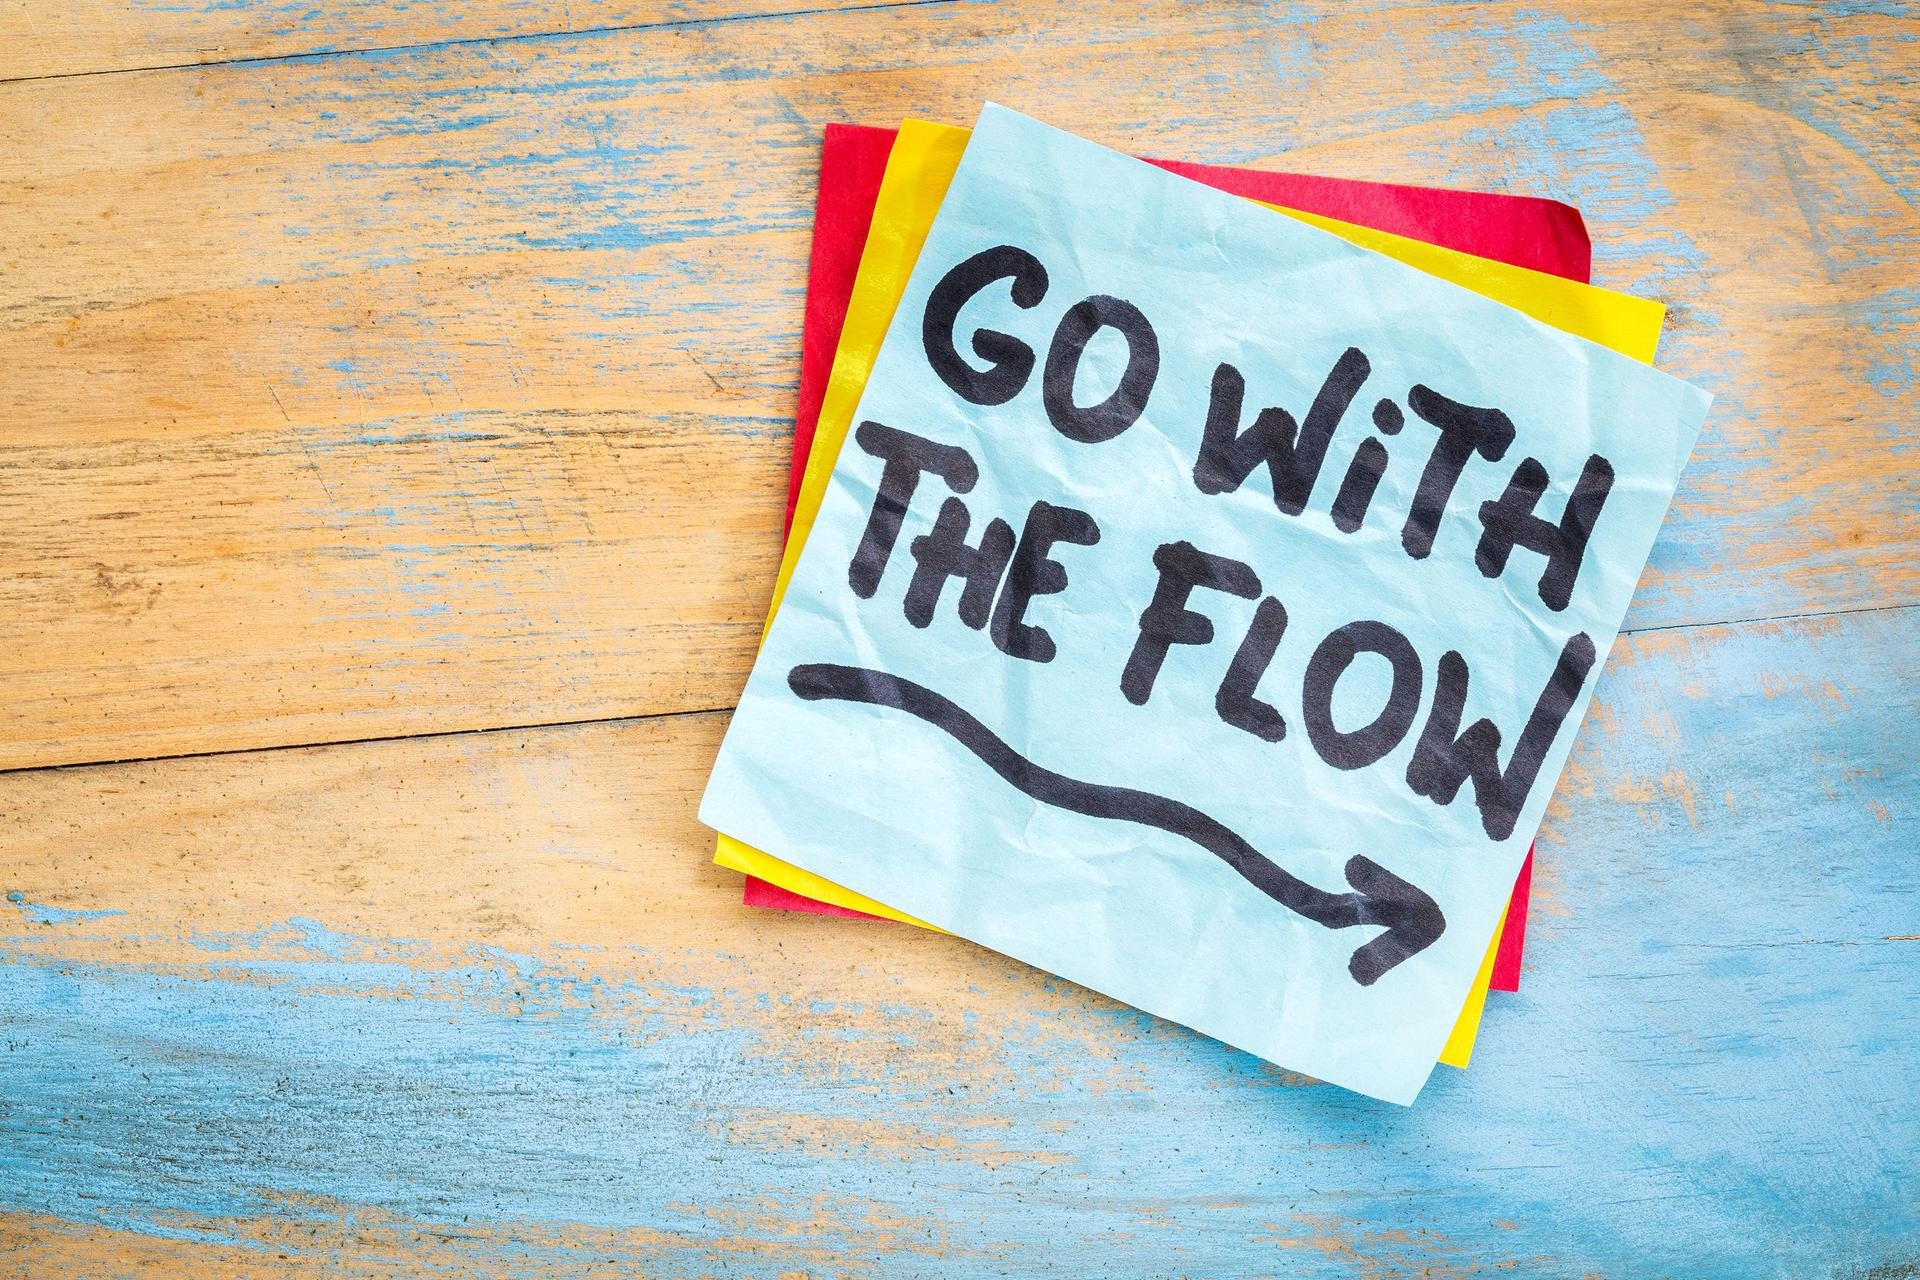 50156097 - go with the flow advice or reminder on a sticky note against grunge painted wood